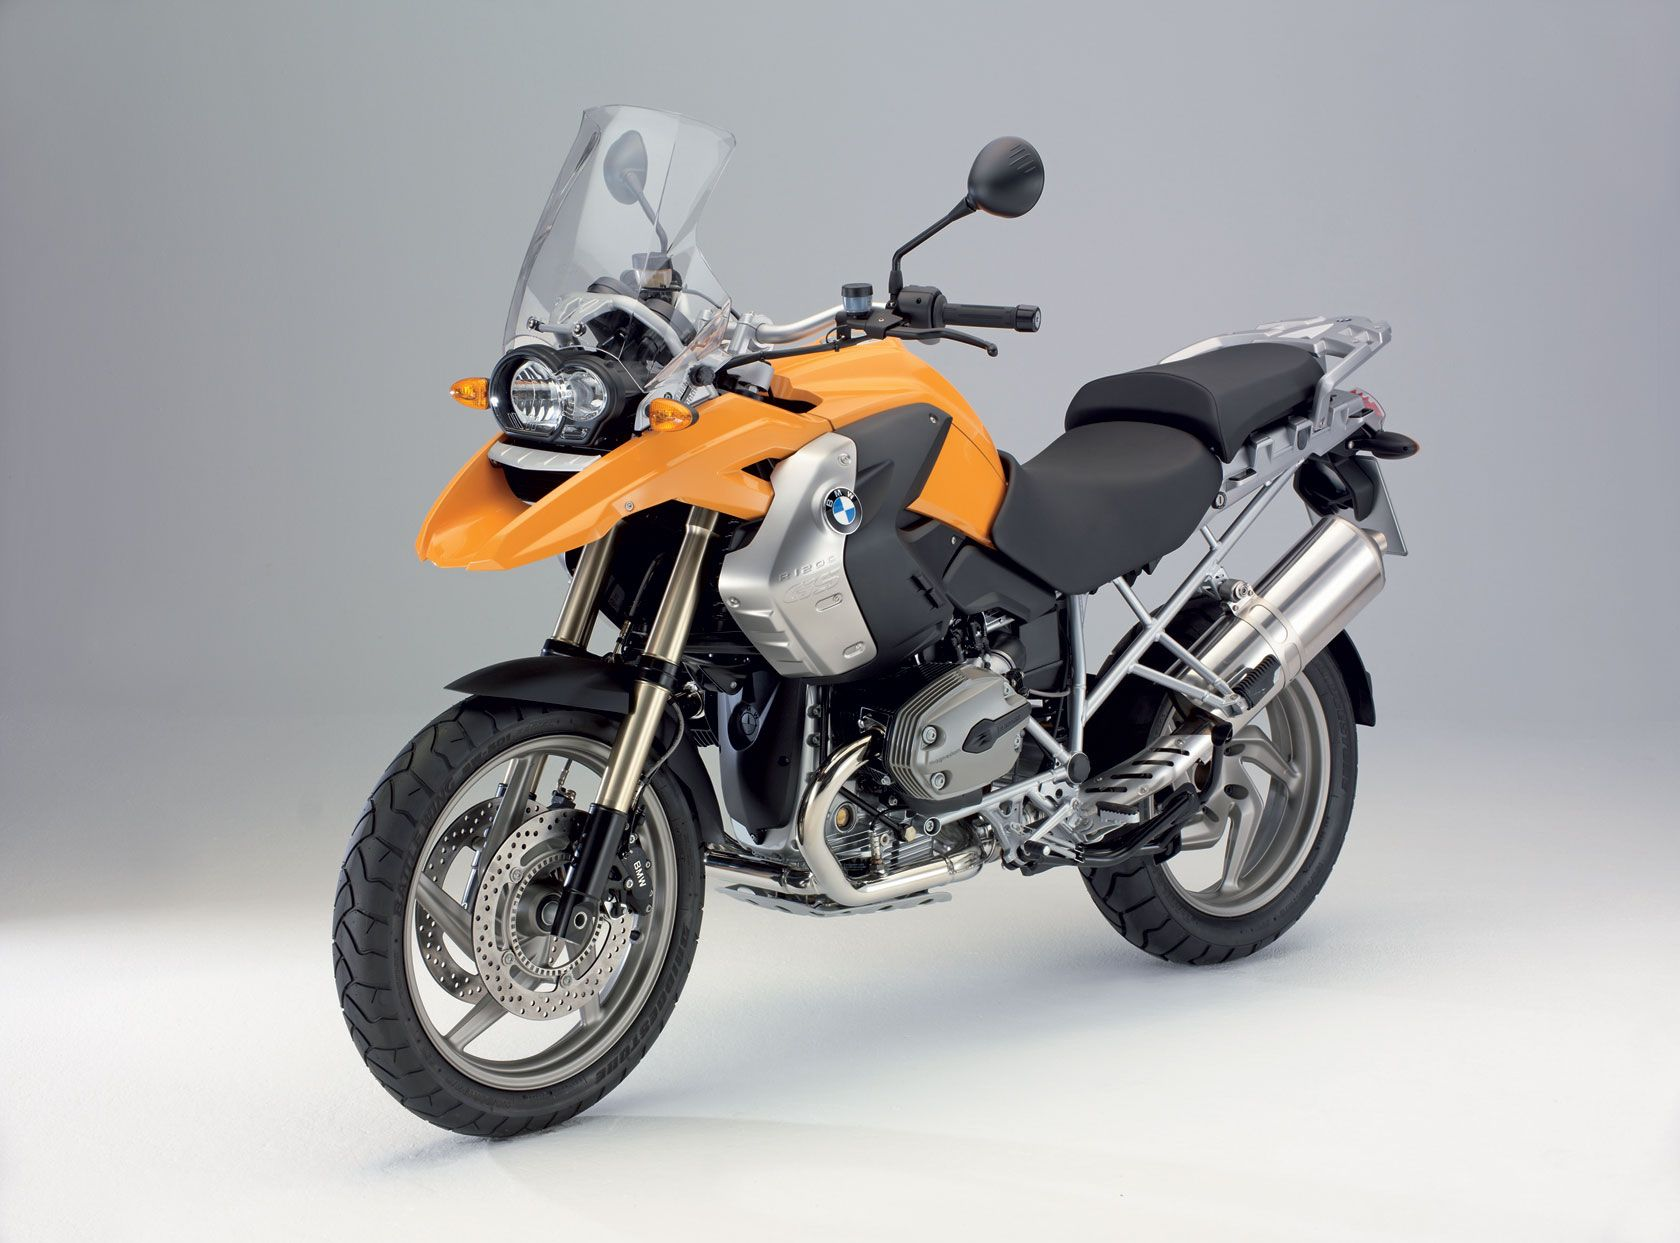 2009 Bmw R1200gs Bmw Motorcycles Motorcycle Usa Racing Bikes